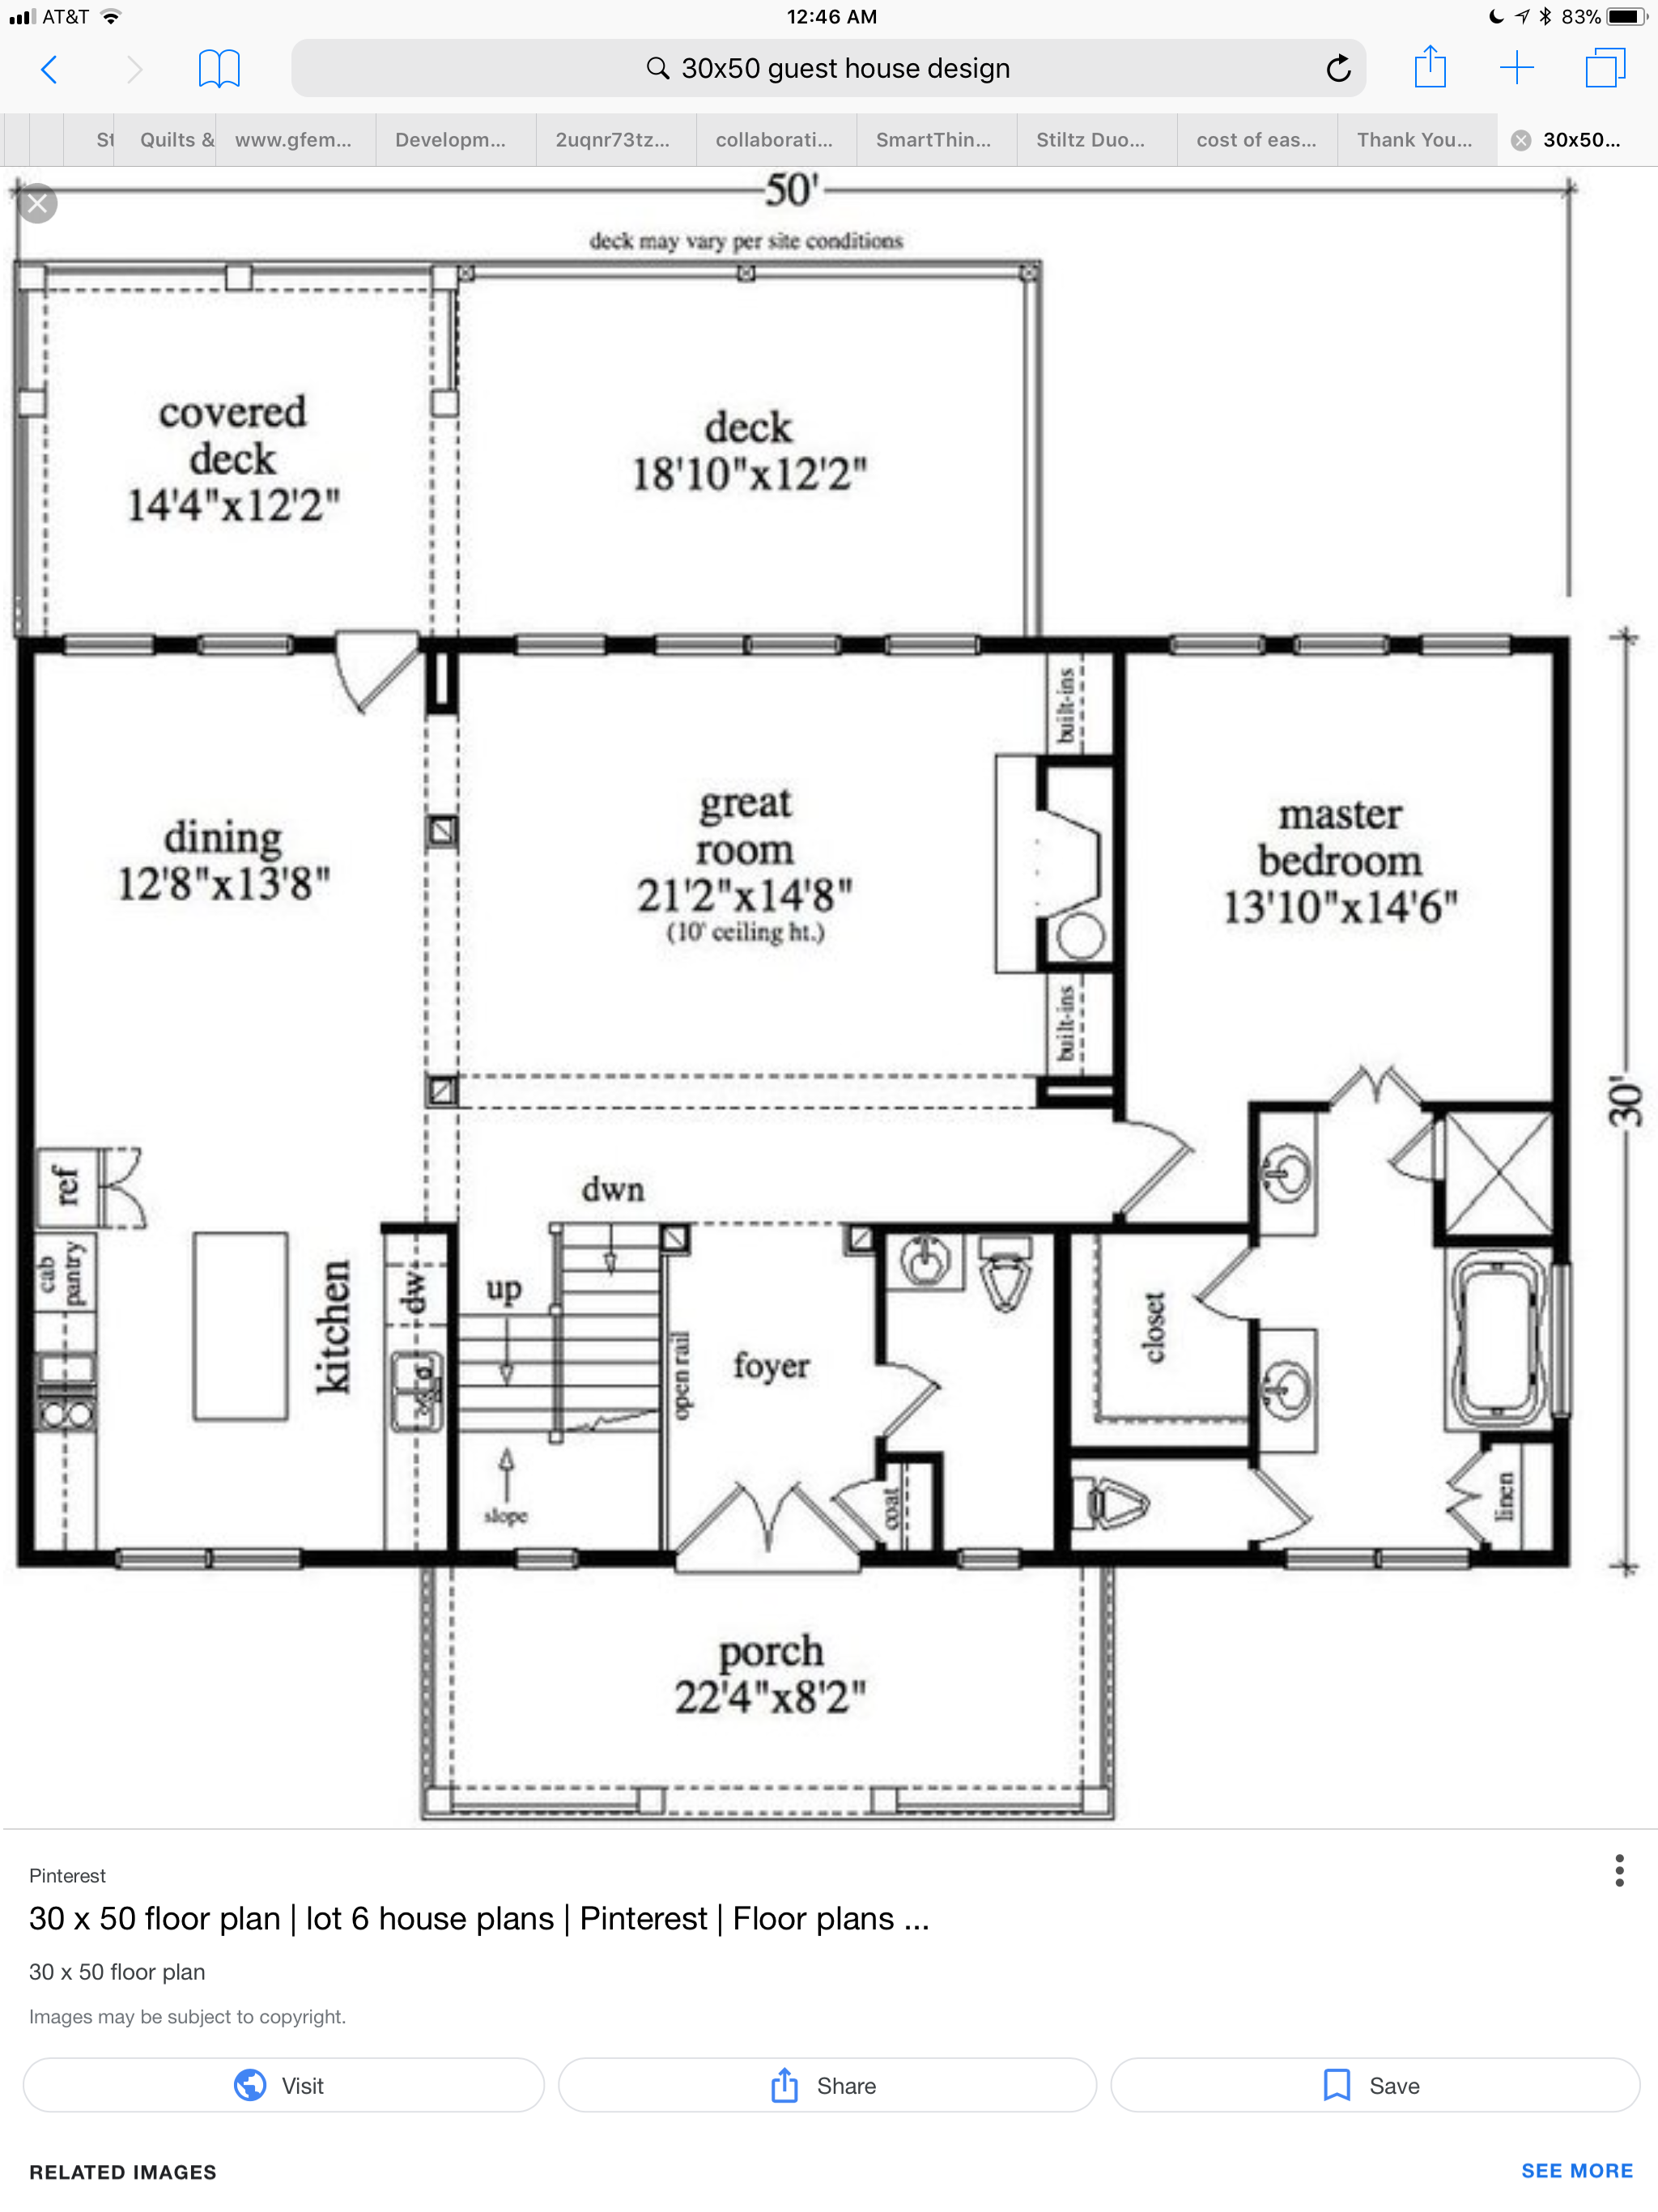 Pin By Kim Westfall On She Shed Floor Plans House Design Covered Decks